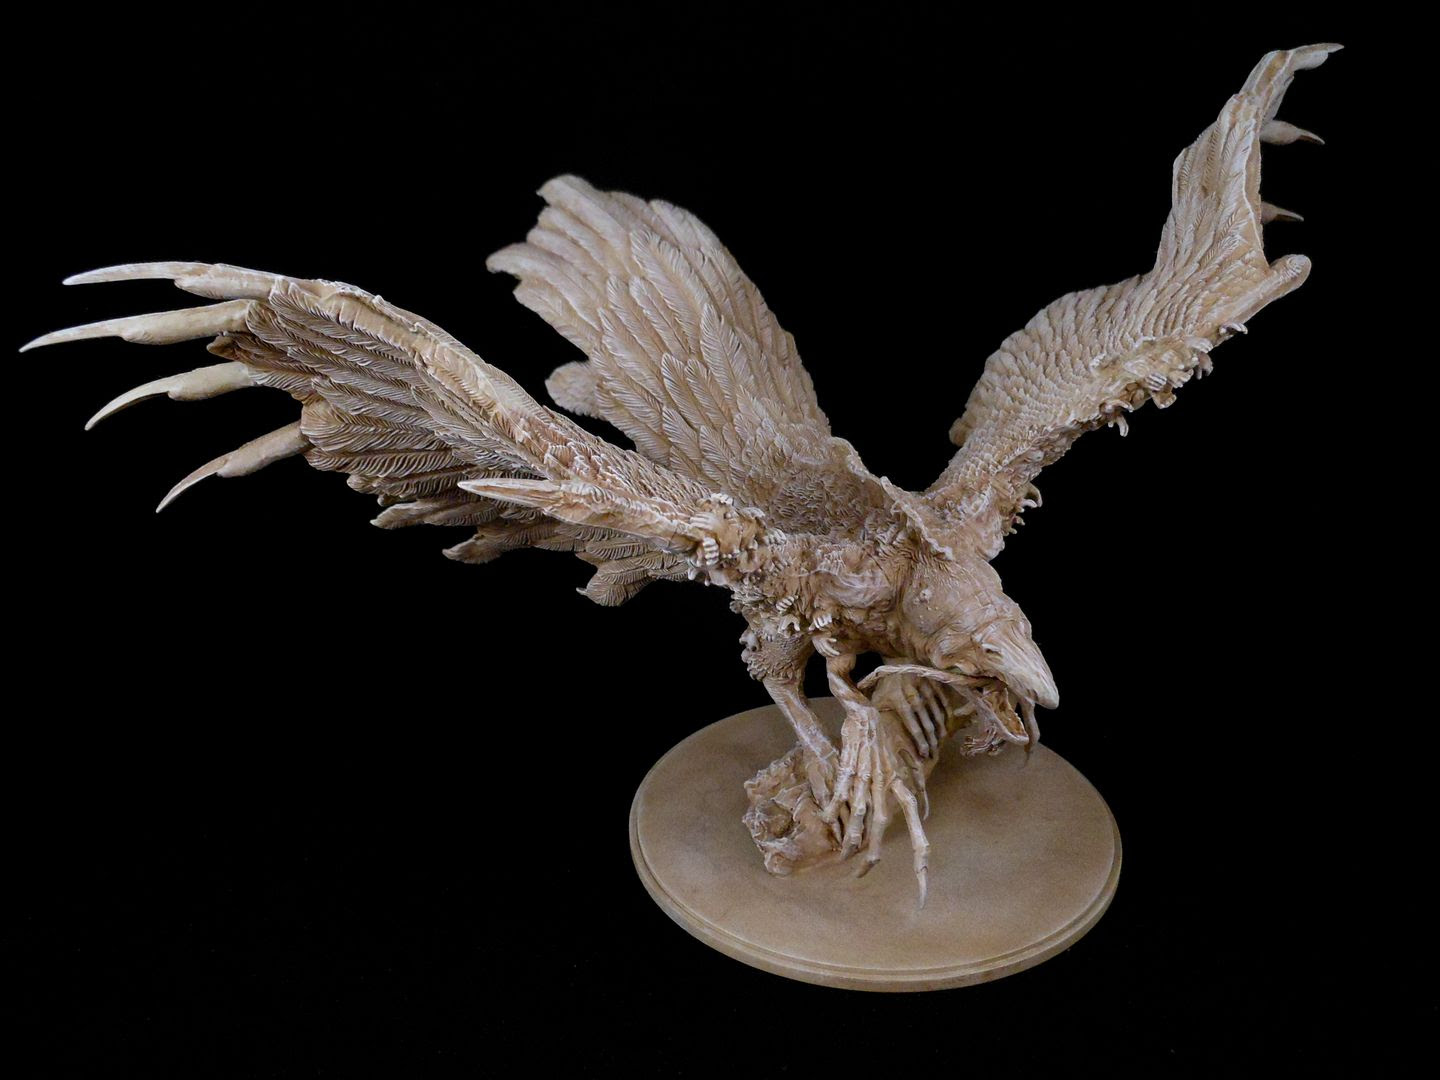 The phoenix from Kingdom Death: Monster, painted to look like a bone carving.